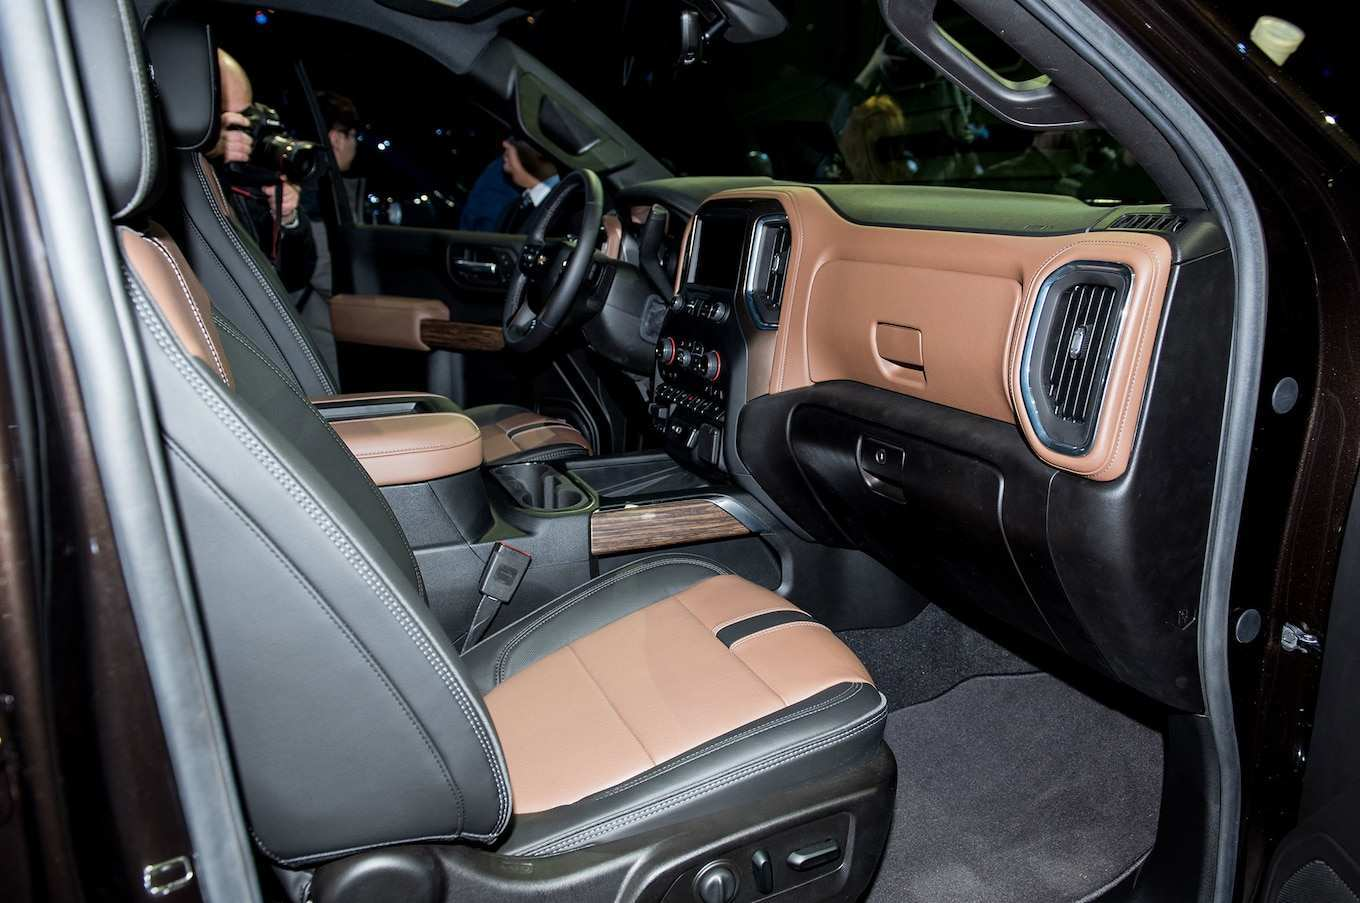 73 Concept of 2019 Chevrolet High Country Interior Concept for 2019 Chevrolet High Country Interior